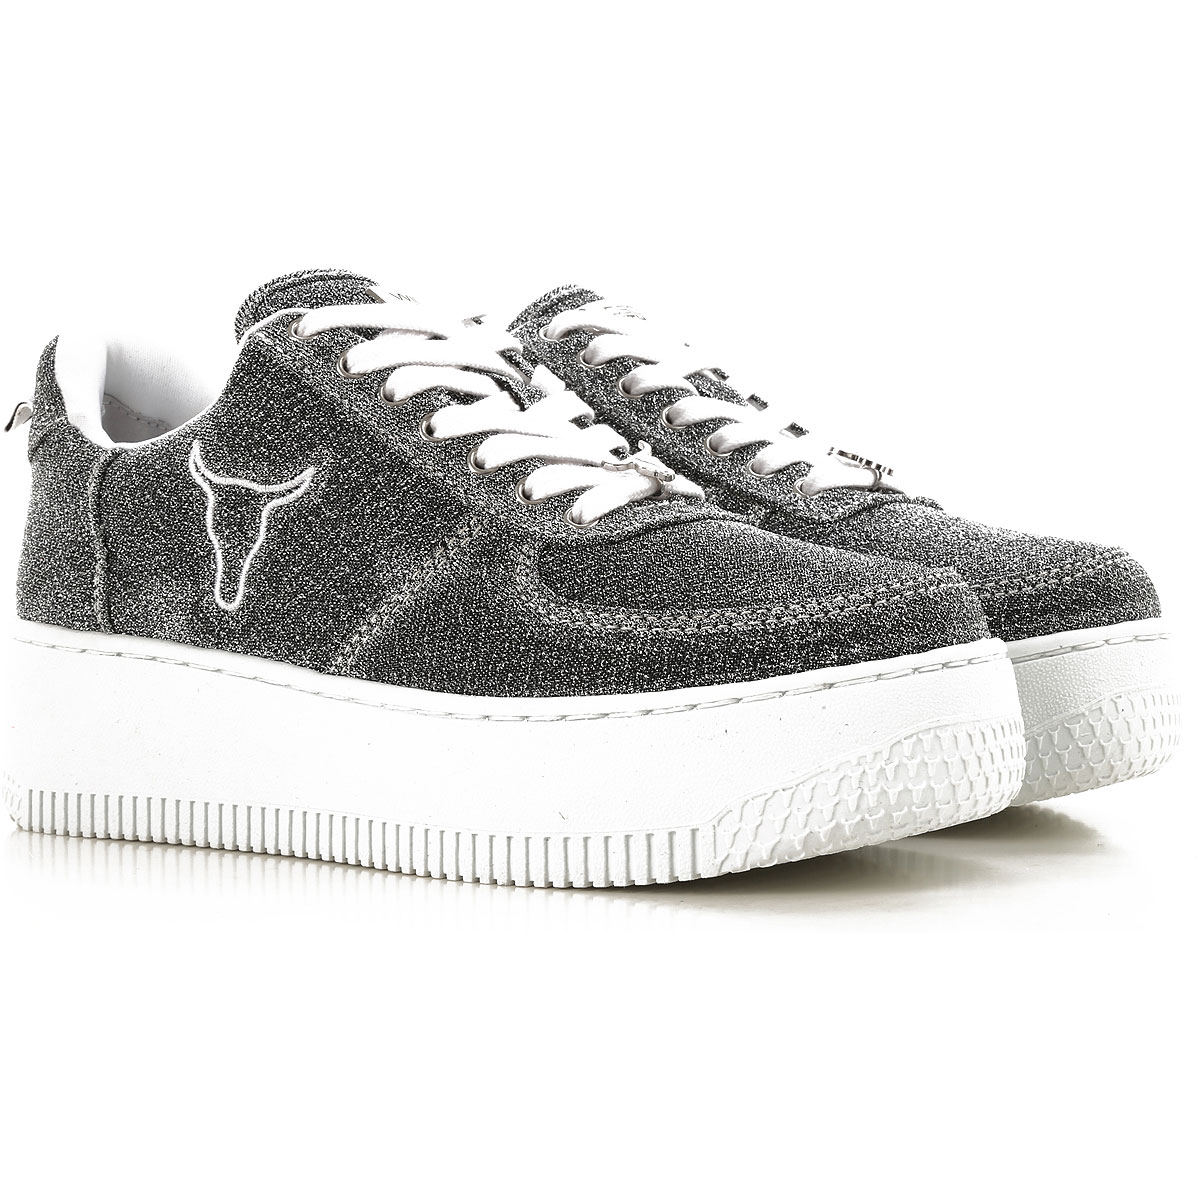 Image of Windsor Smith Sneakers for Women, Silver, Fabric, 2017, US 5 (EU 36) US 6 (EU 36.5) US 7 (EU 38) US 8 (EU 39) US 9 (EU 40)